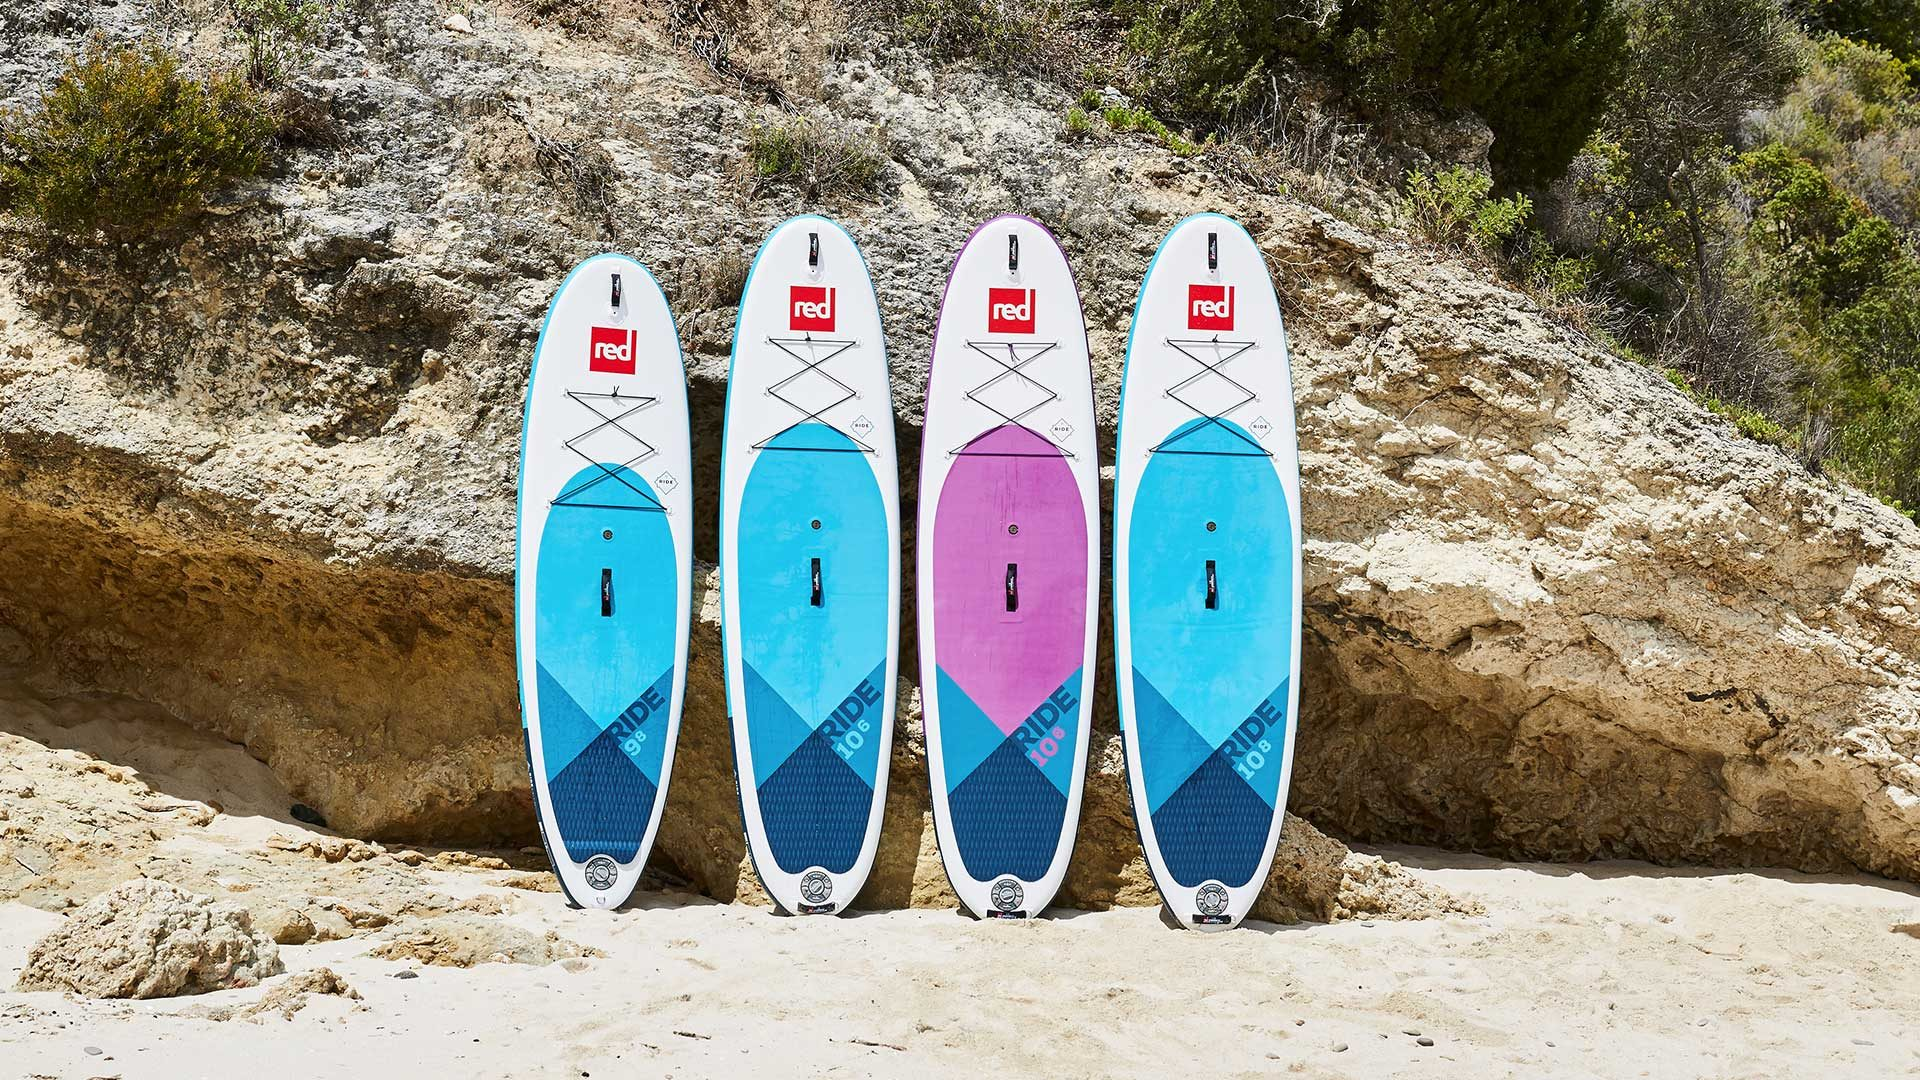 redpaddleco-106-ride-se-msl-inflatable-paddle-board-desktop-gallery-1